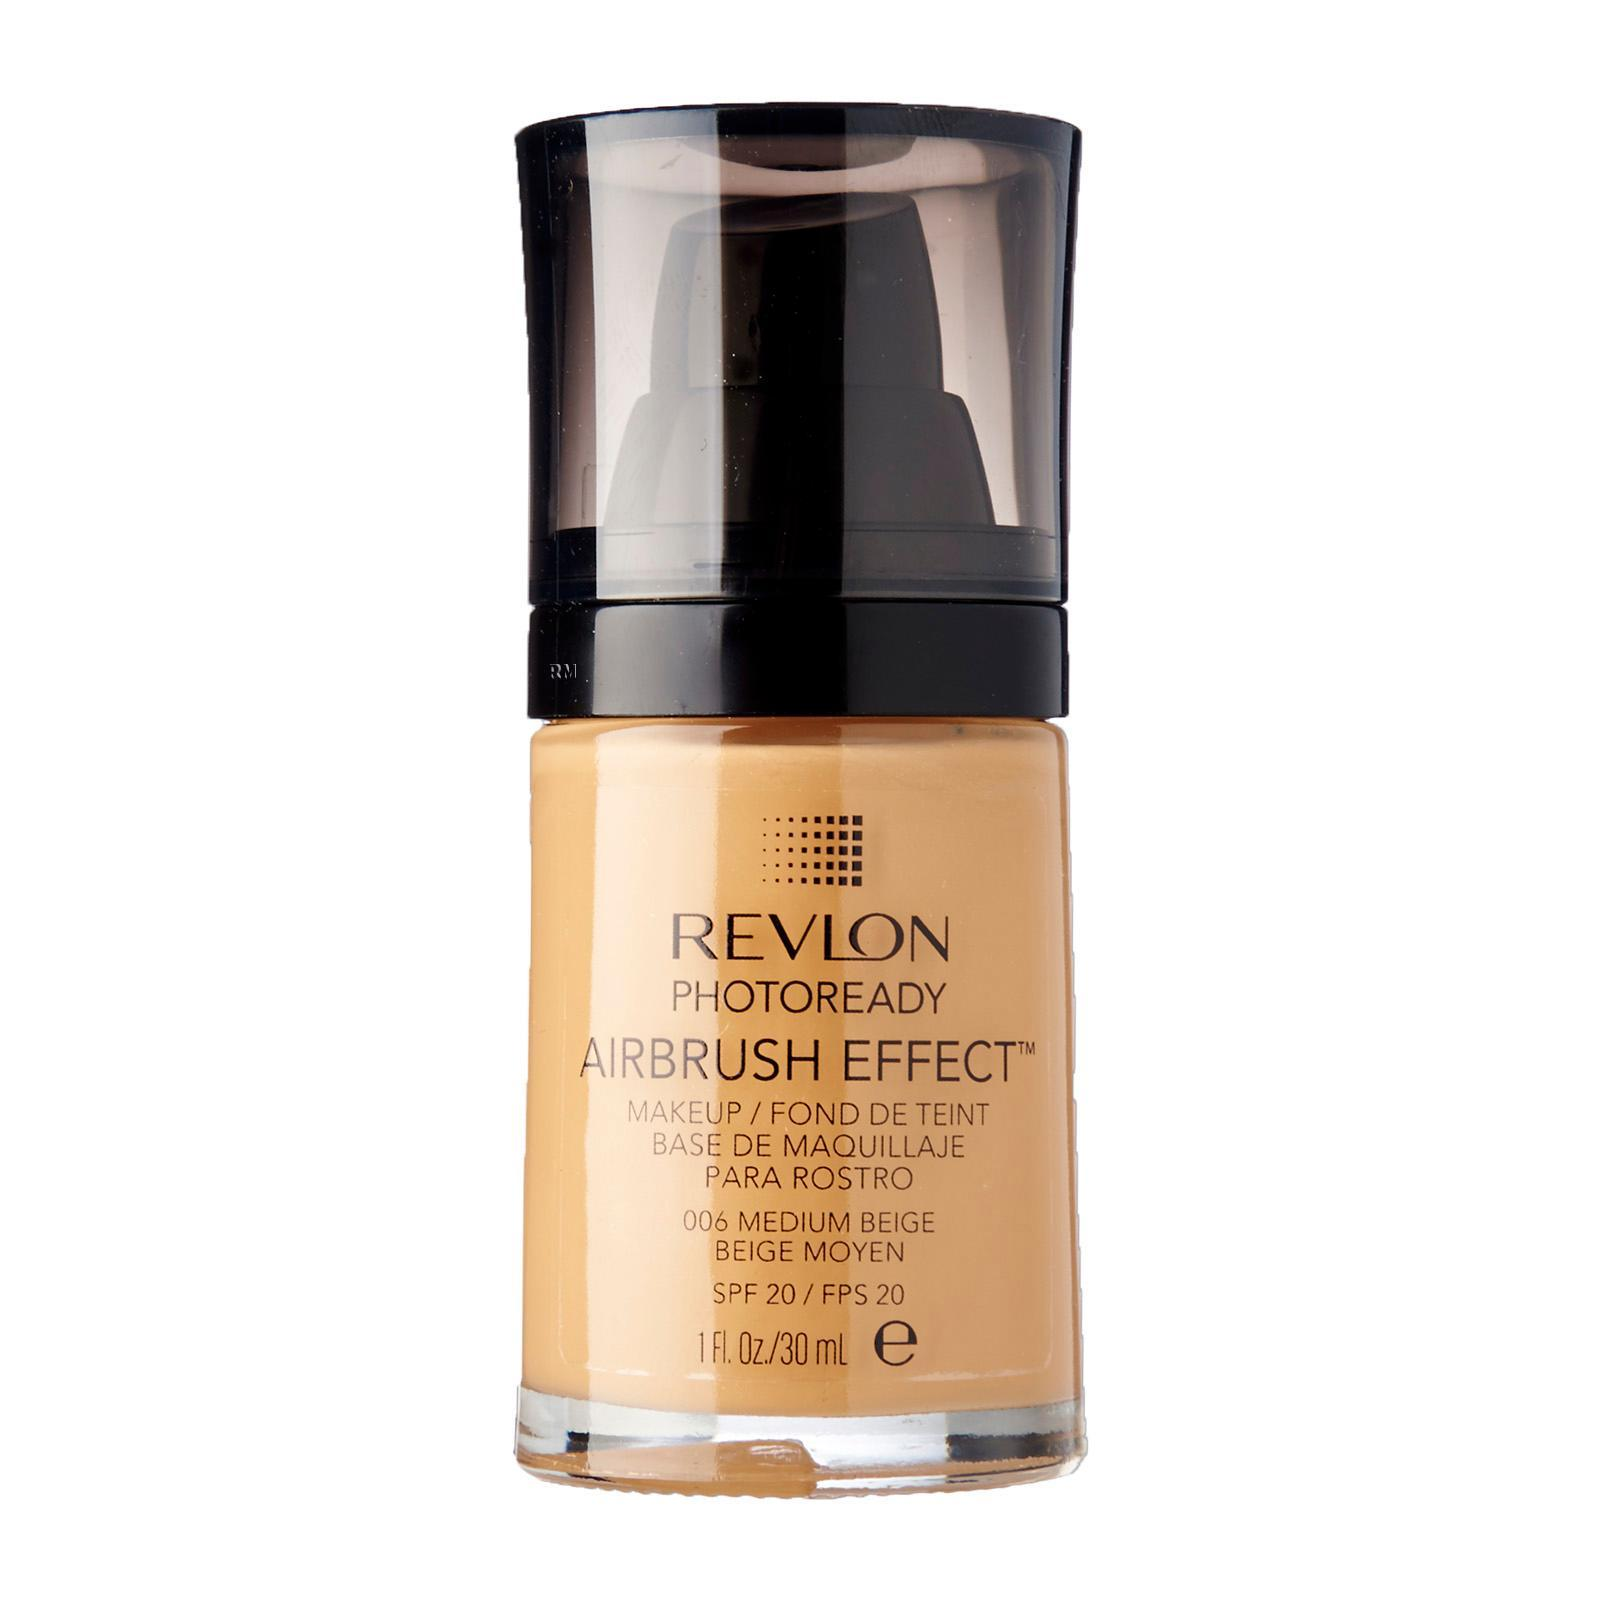 Revlon PhotoReady Airbrush Effect Foundation 006 Medium Beige